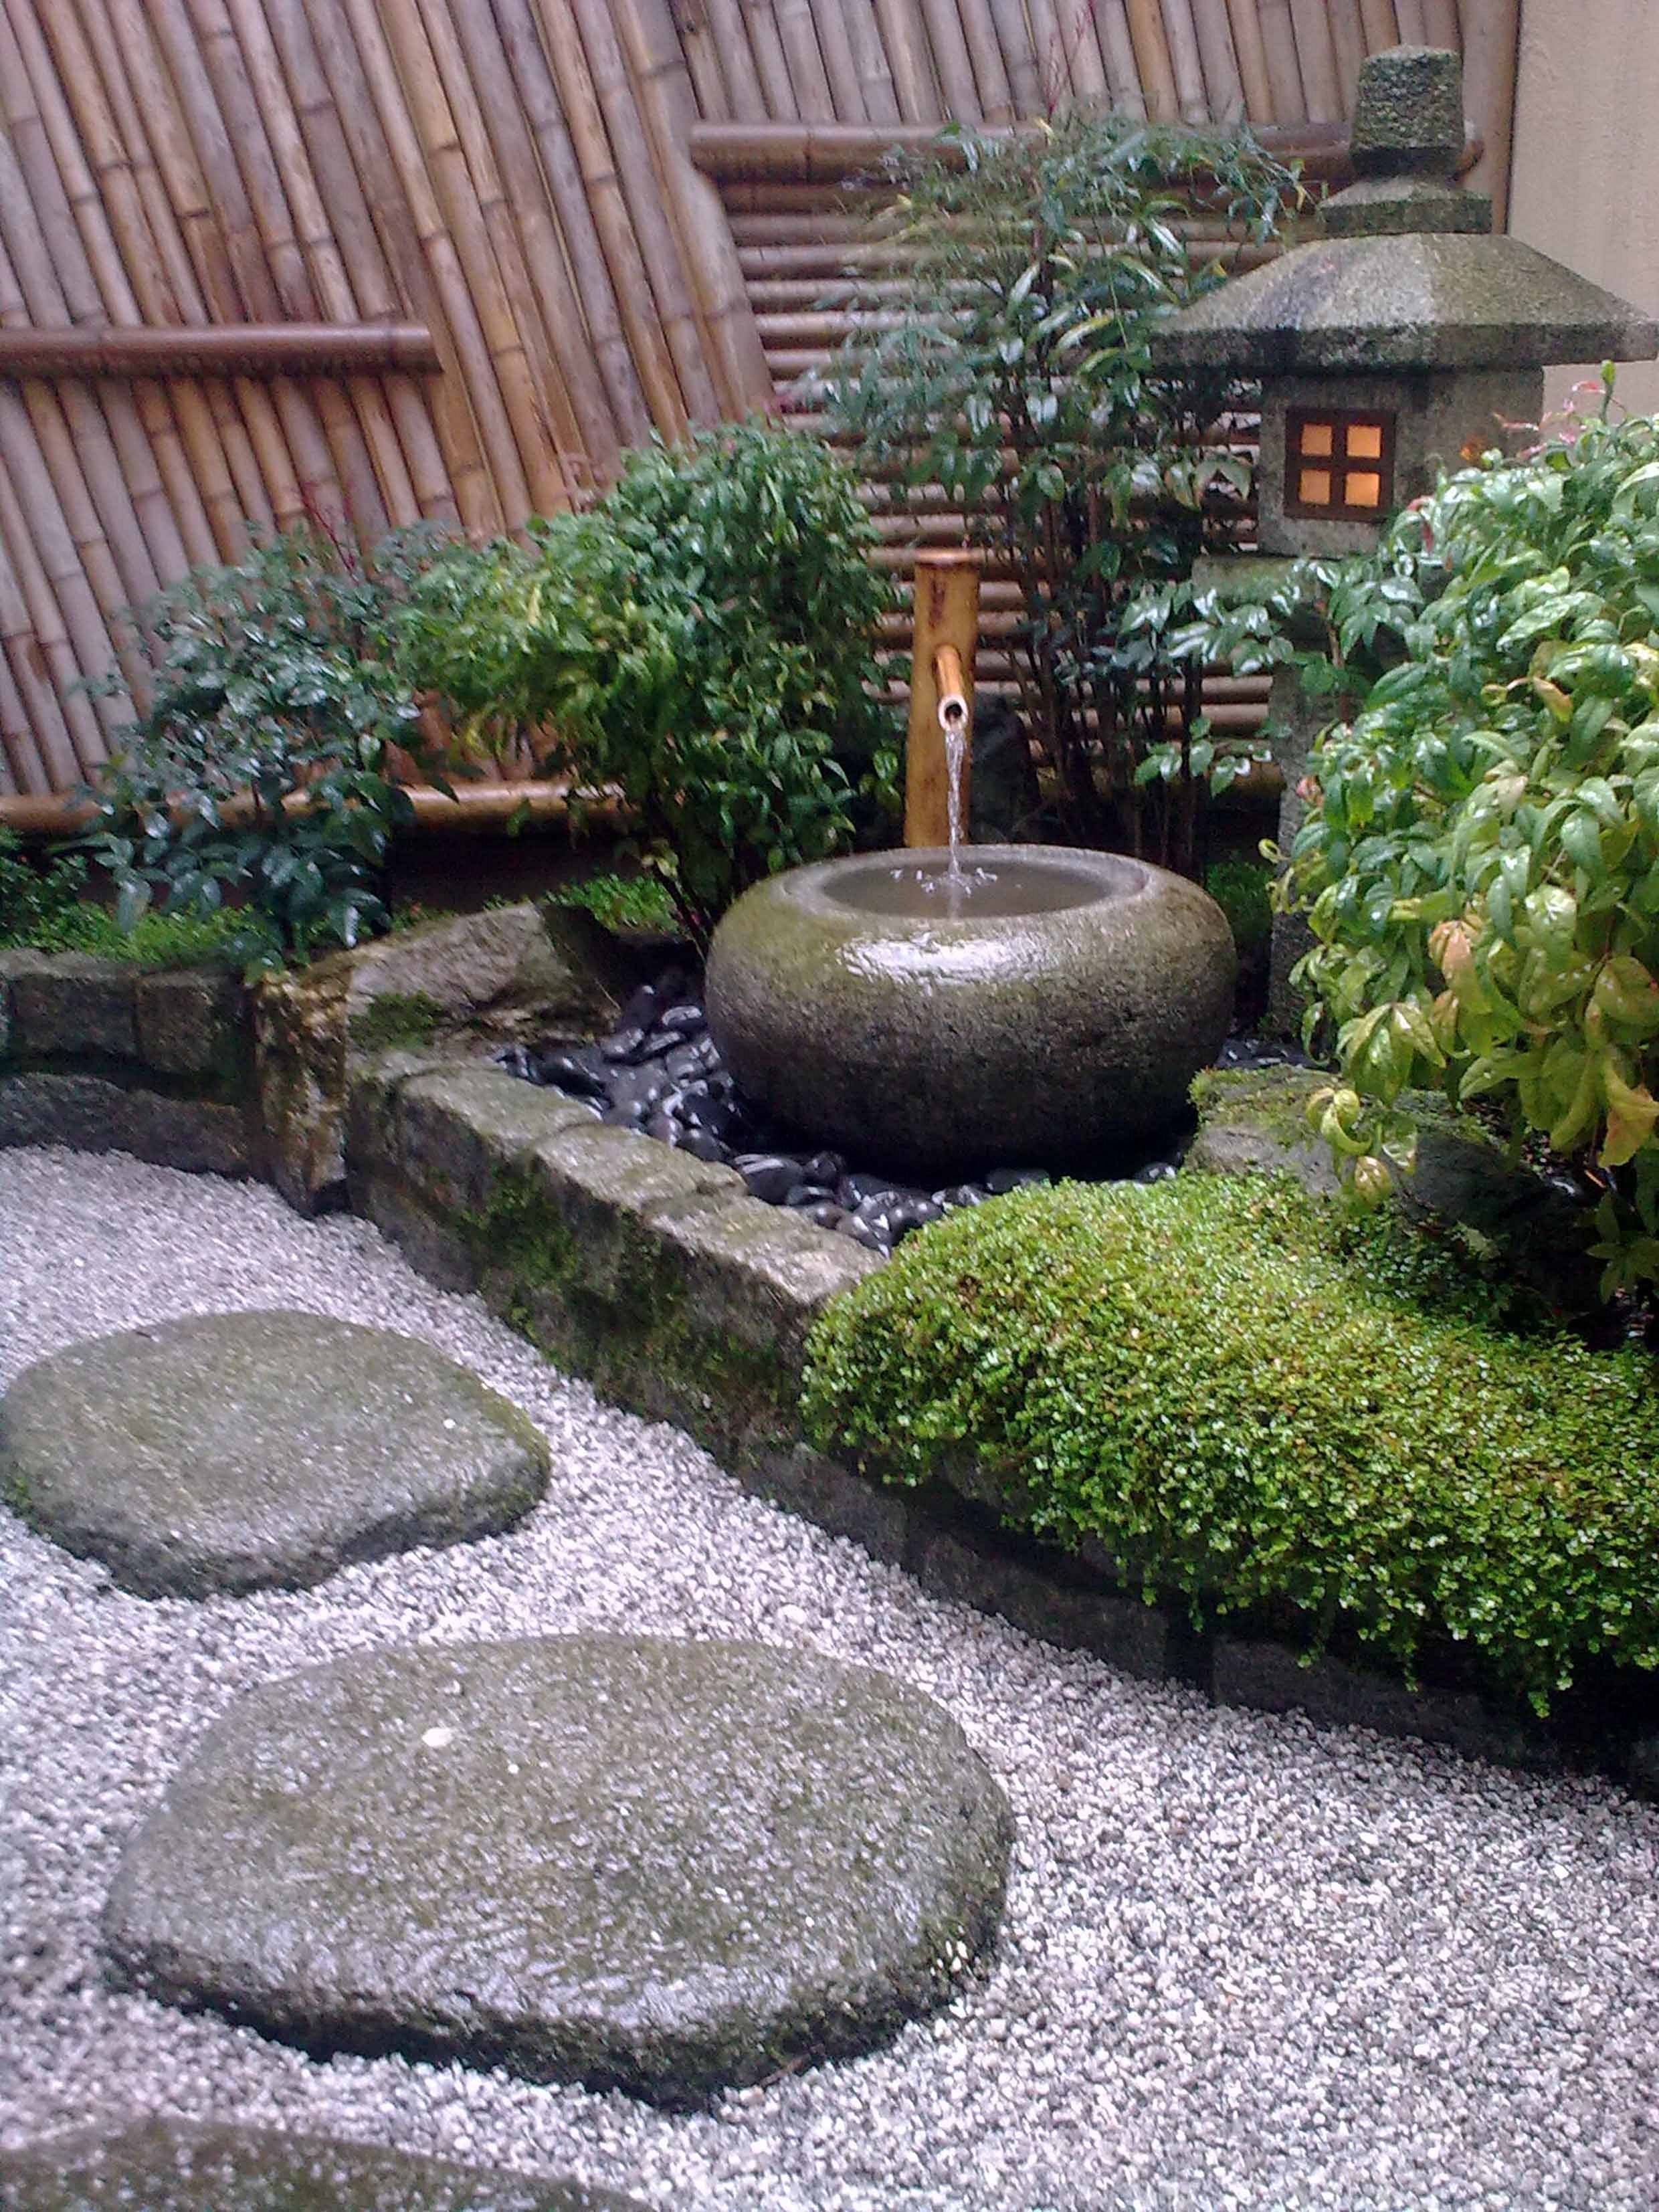 Japanese Rock Garden Ideas 76 Beautiful Zen Garden Ideas For Backyard 400 Japanese